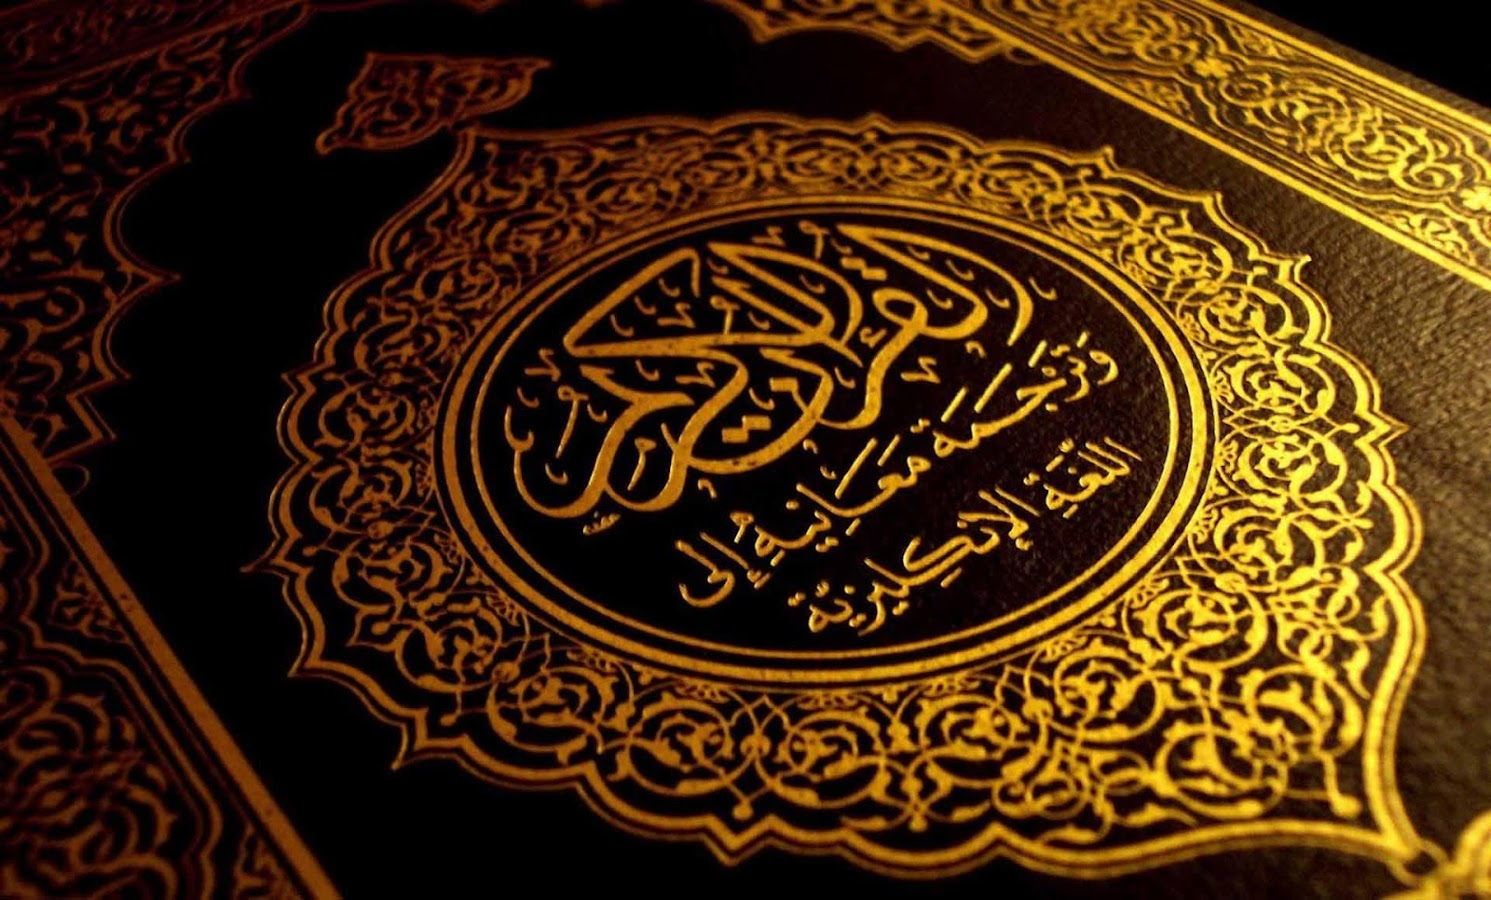 islamic wallpapers hd 1080p - android apps on google play